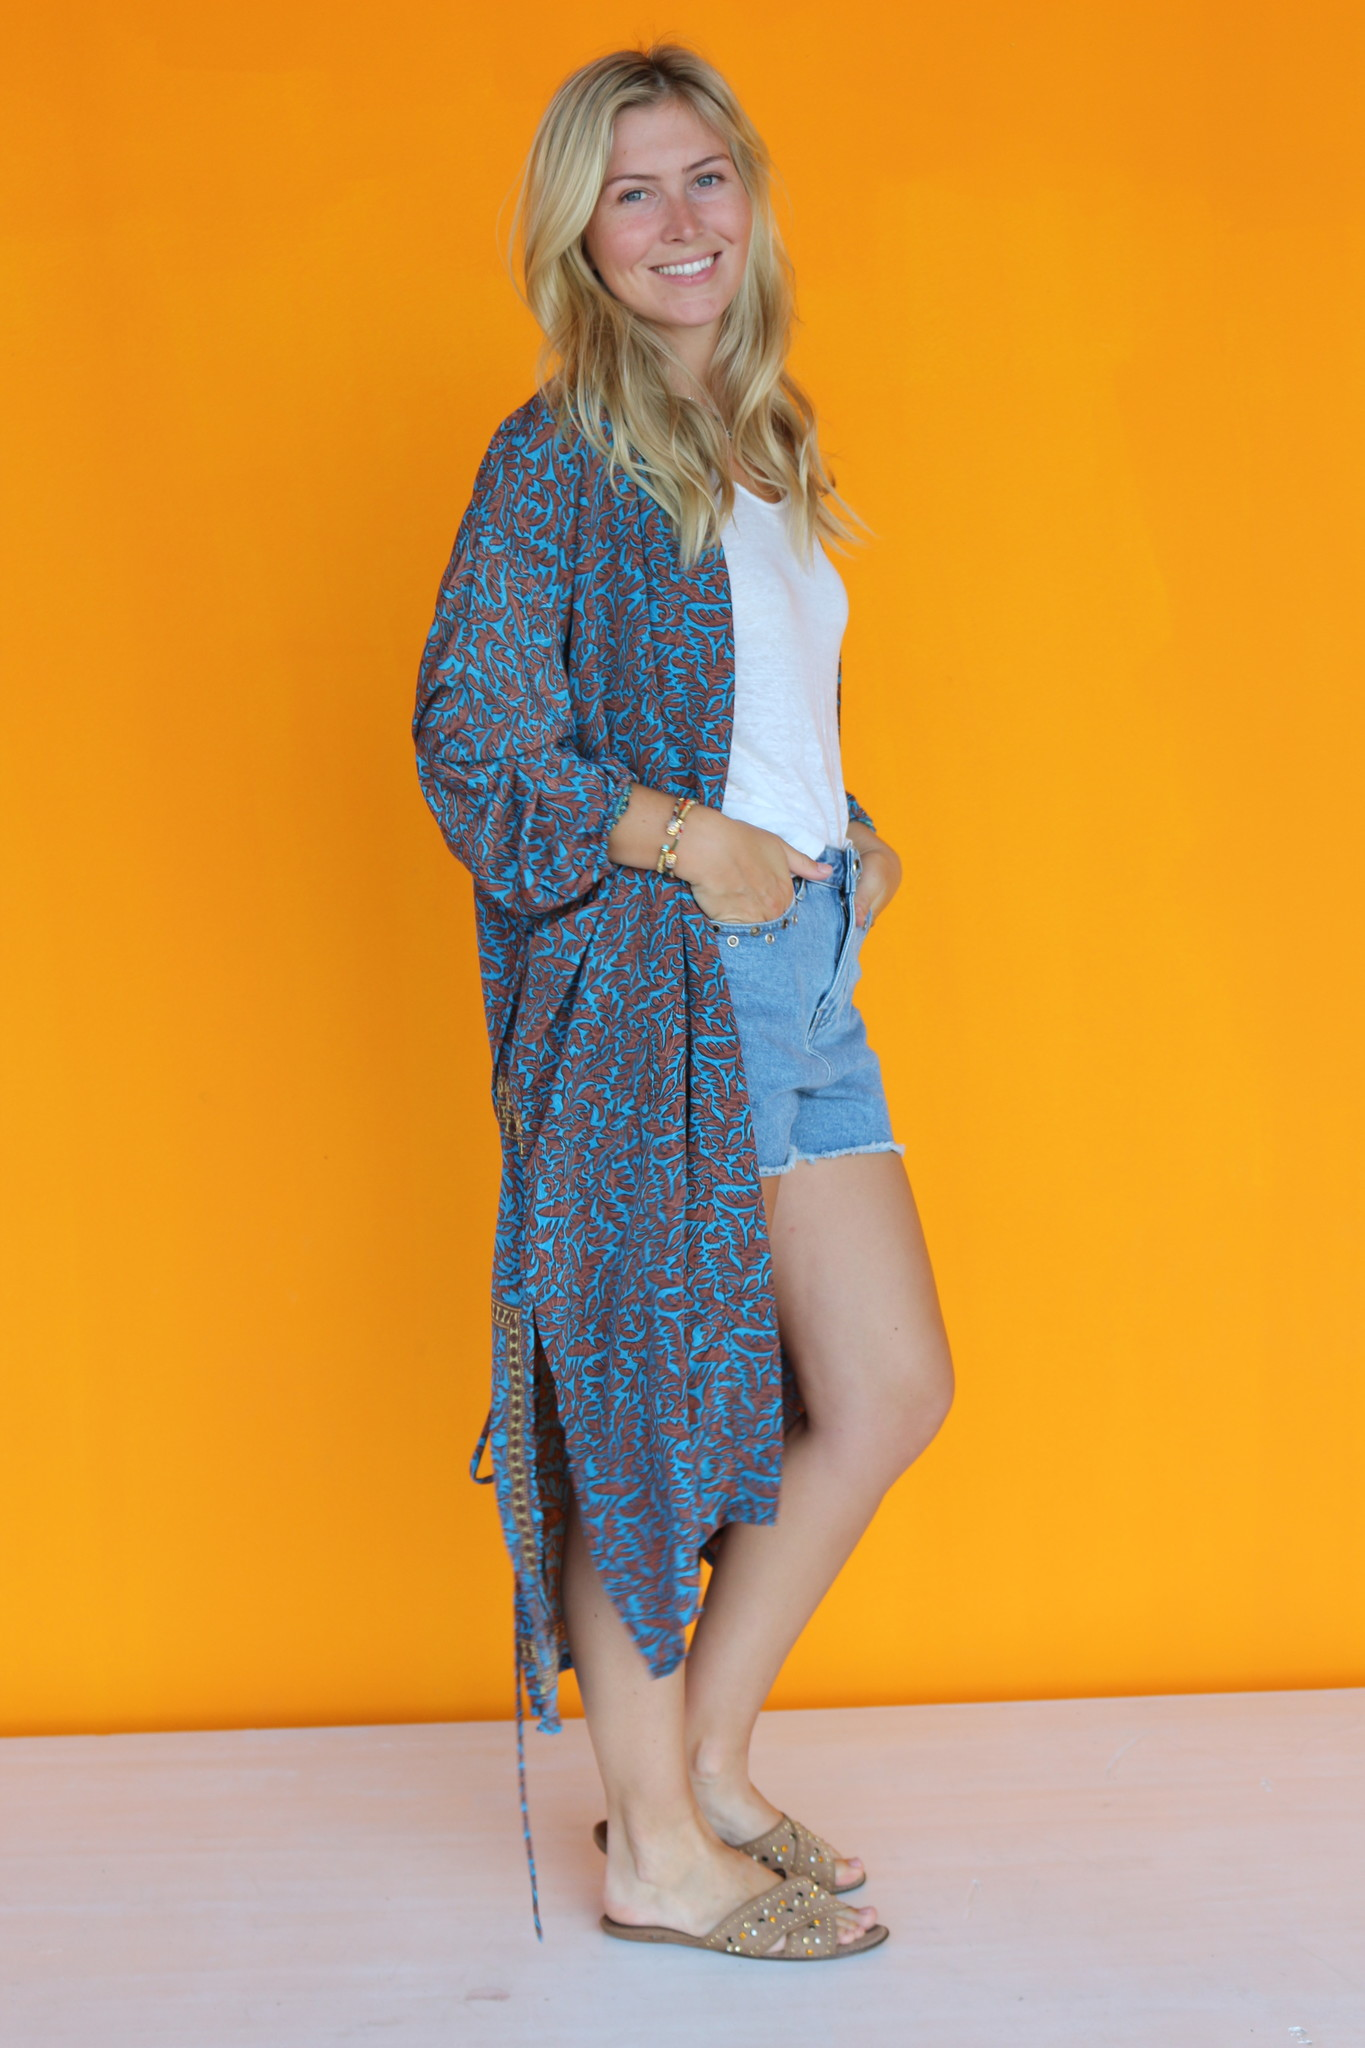 SISSEL EDELBO MORNING GLORY KIMONO FROM SISSEL EDELBO NO.5